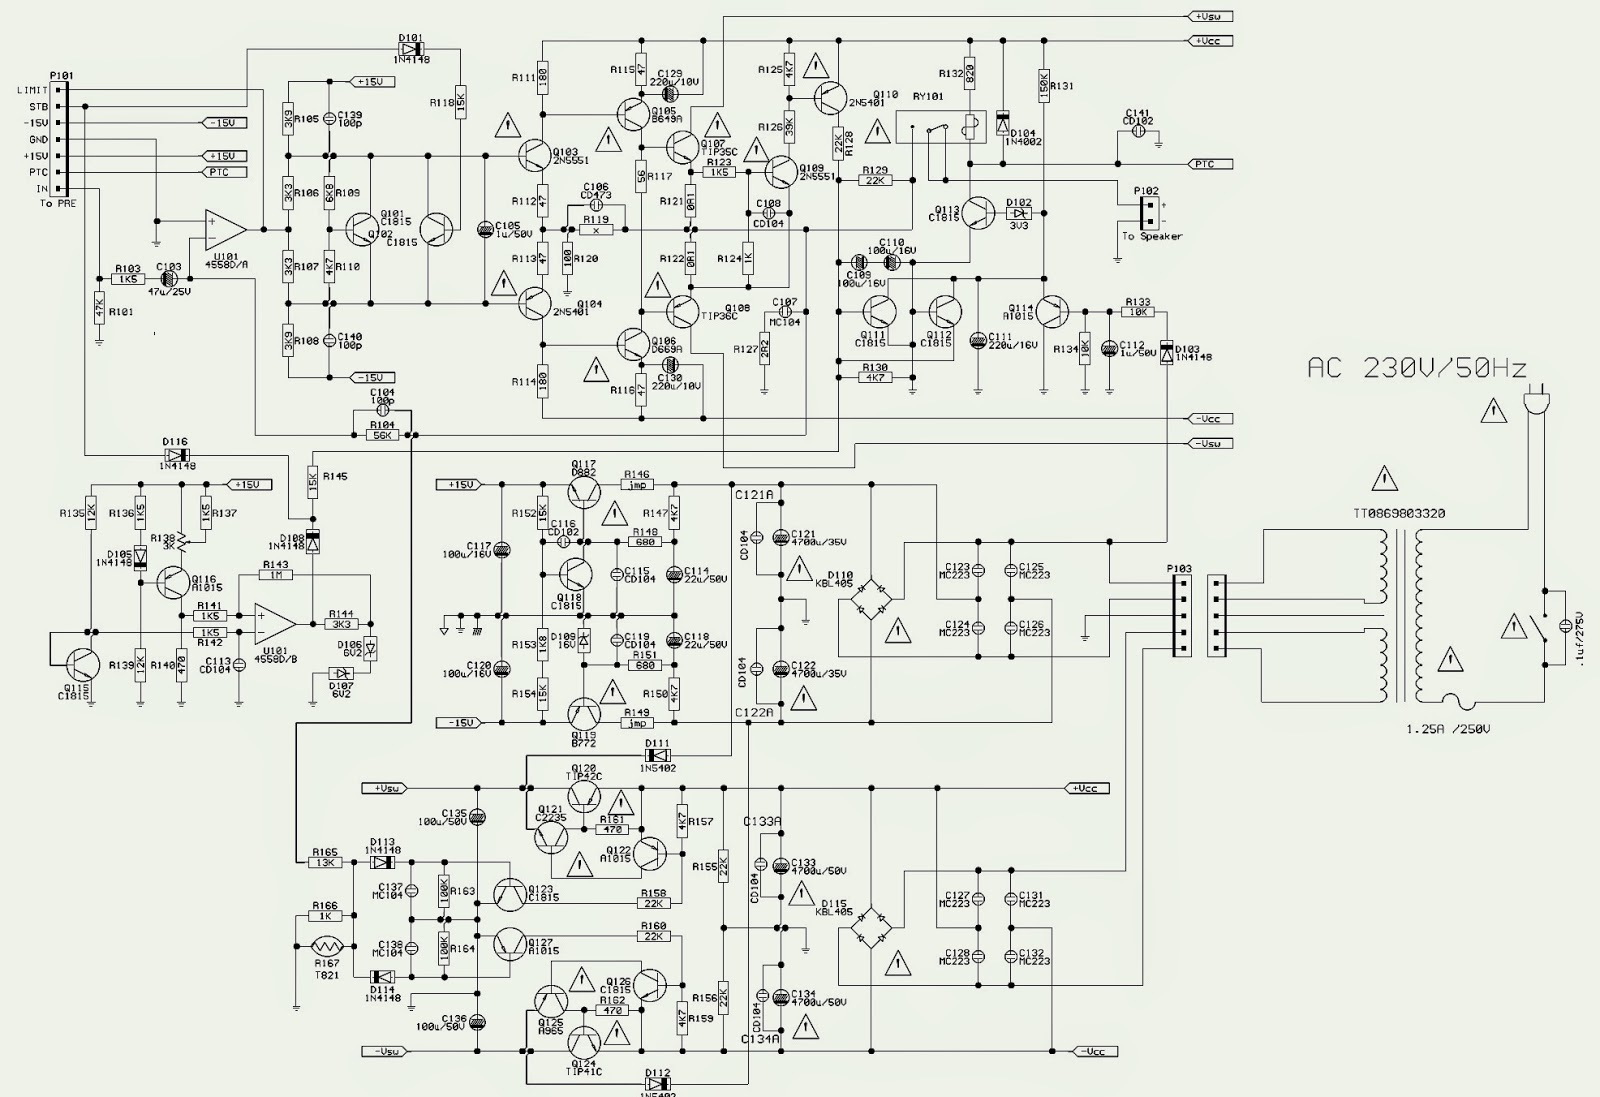 Infinity Primushcsch 230 Hcs Schematic Circuit Diagram Electro 230v Wiring Click On The Schematics To Zoom In